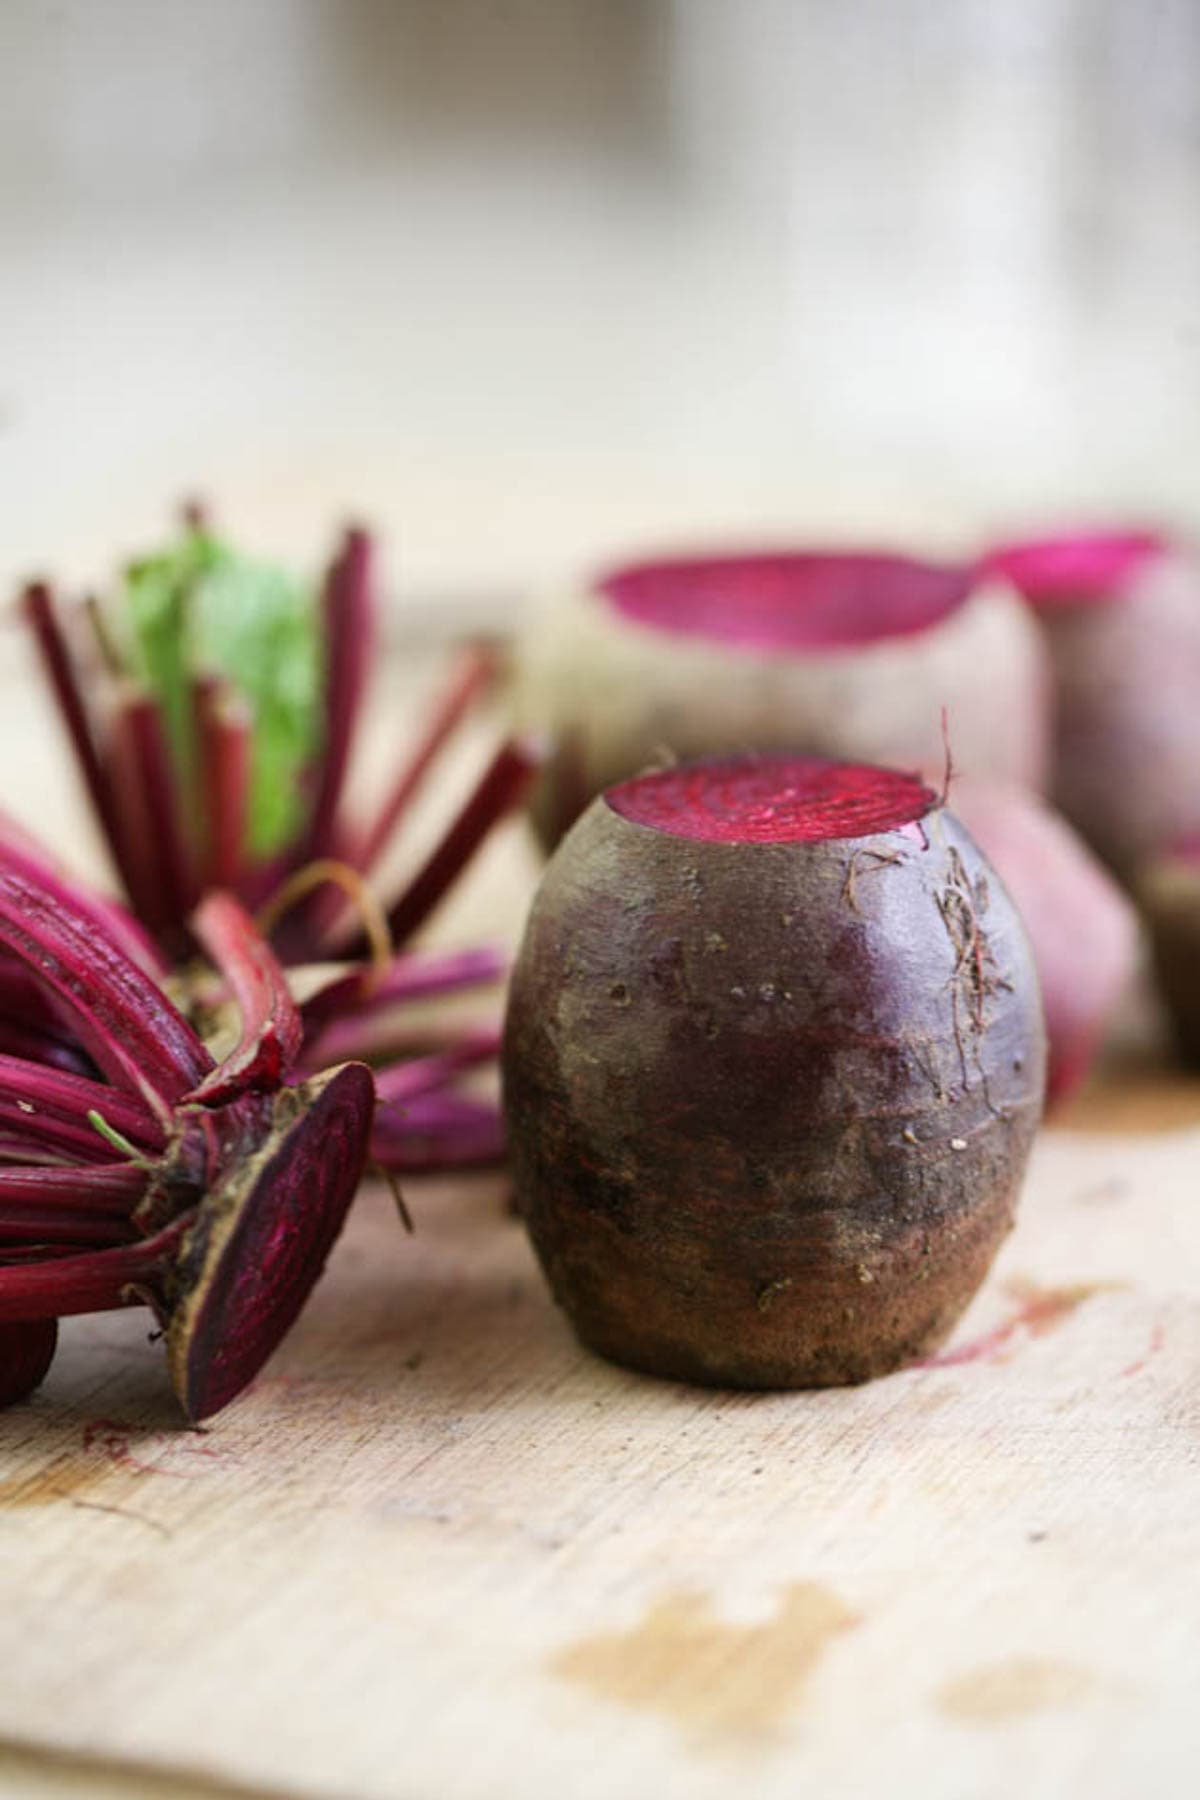 Cutting the tops and roots of the beets